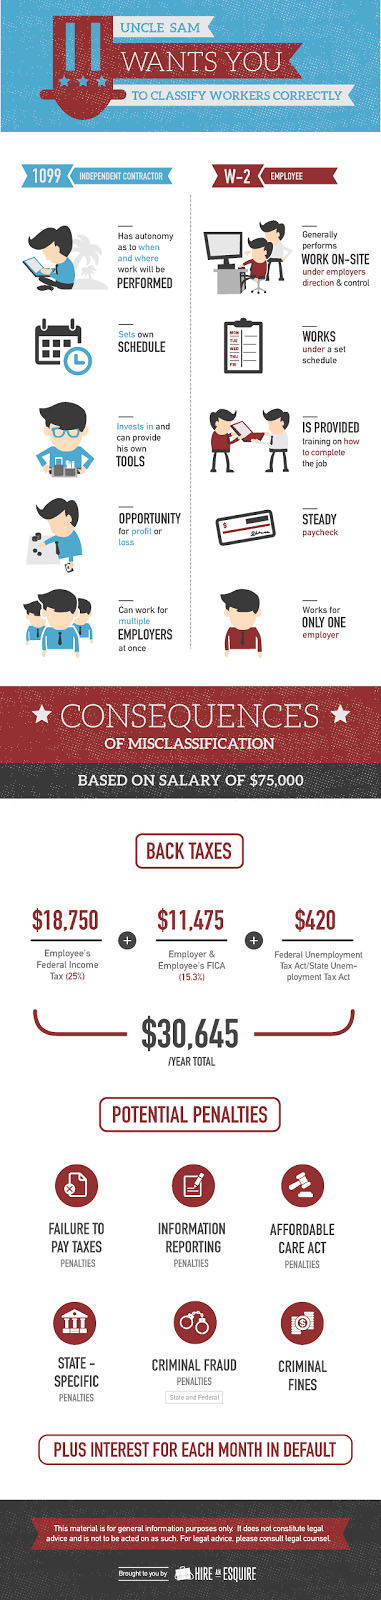 Hire An Esquire's 1099 Vs. W2 Employee Classification Infographic